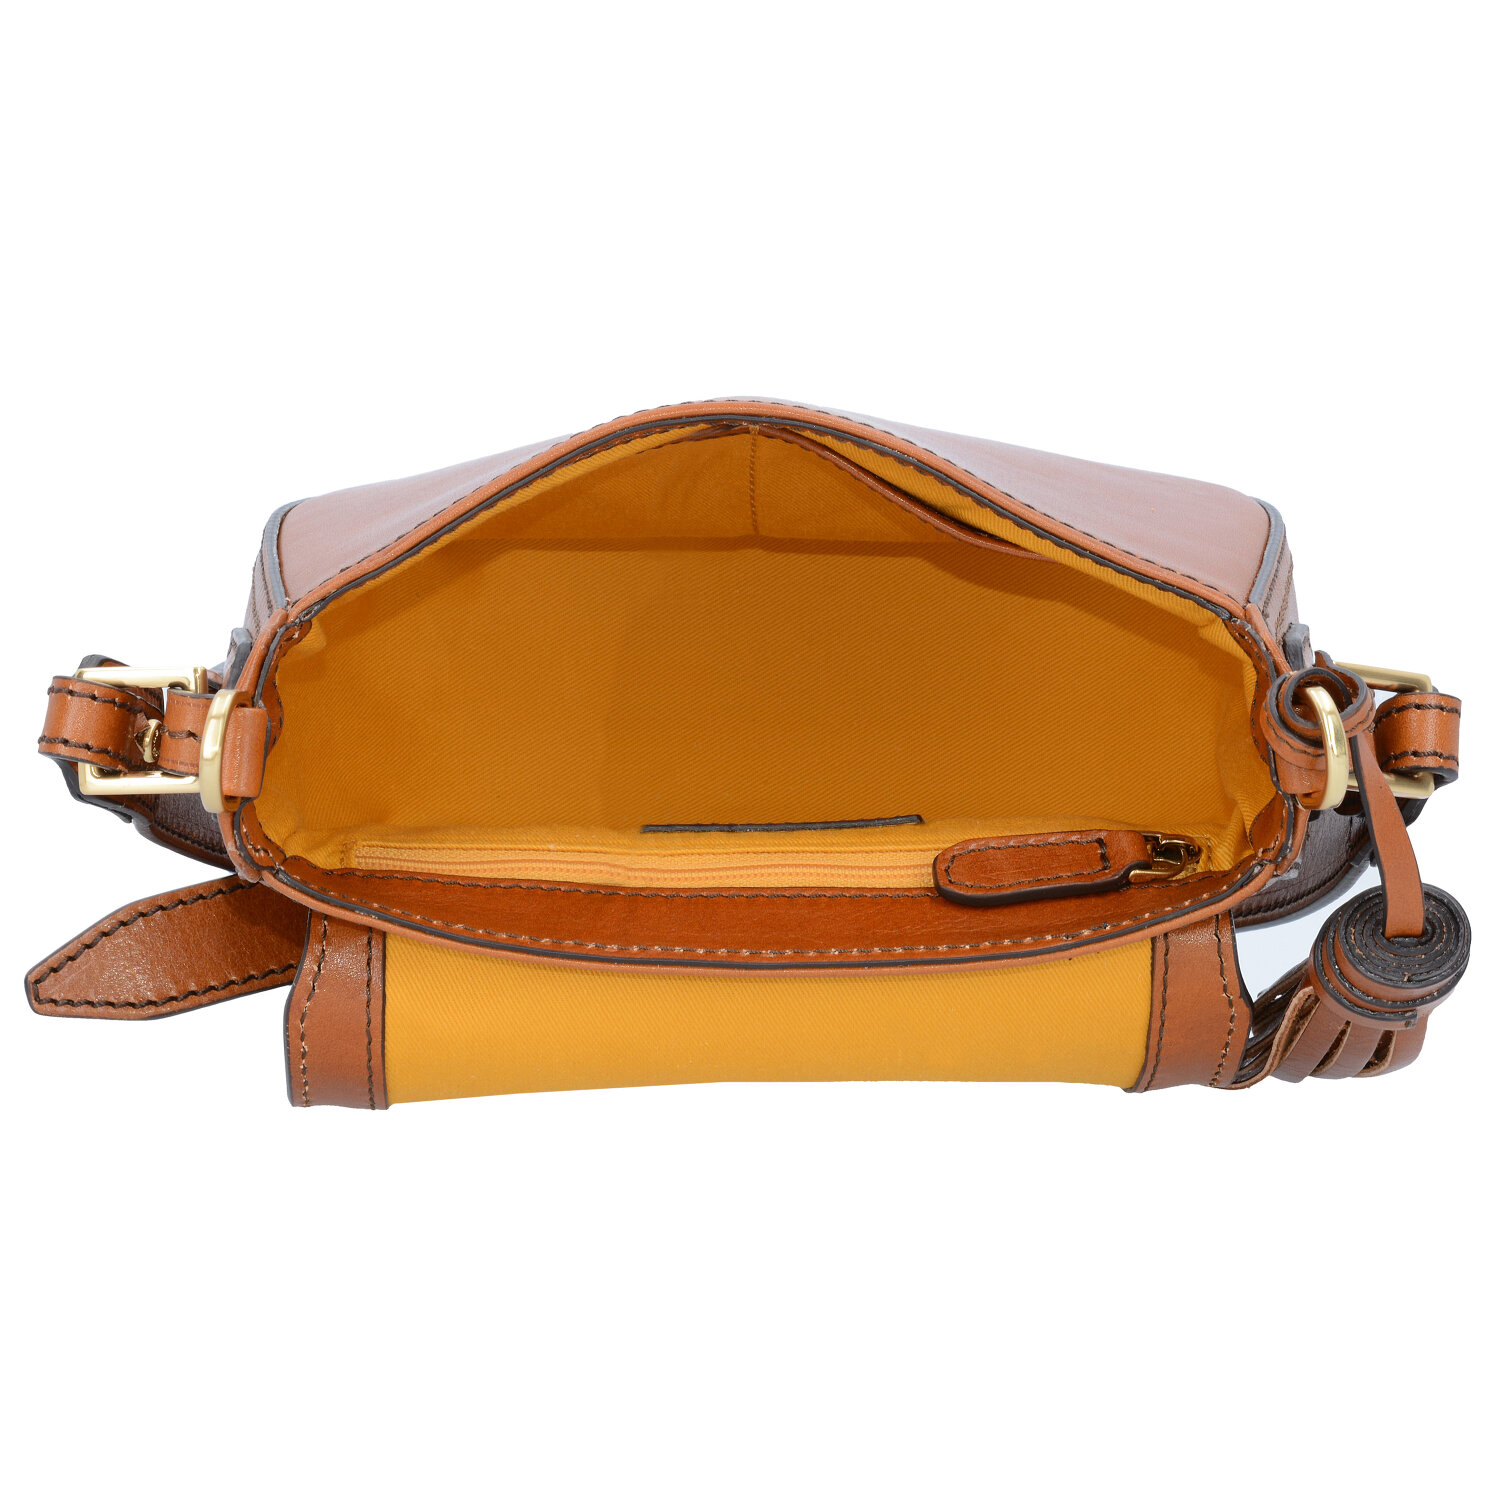 40d12d79264d5 The Bridge Murakami Mini Bag Schultertasche Leder 20 cm cognac abb ...